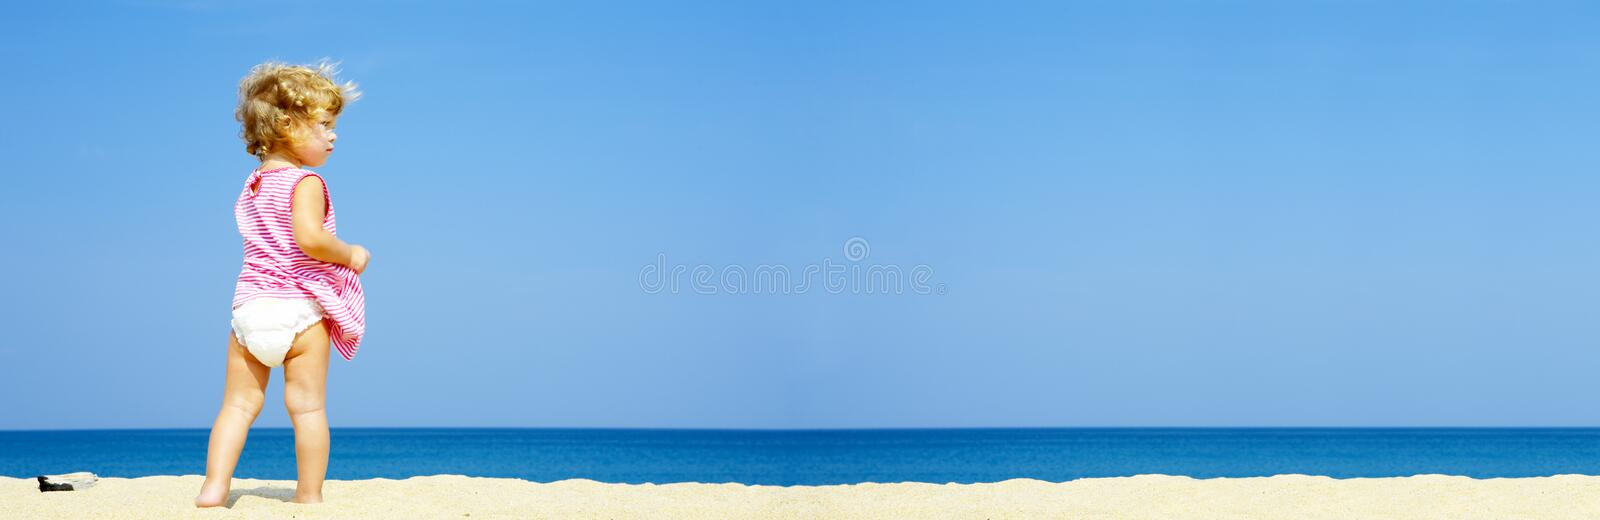 Lonely Baby Banner Stock Image